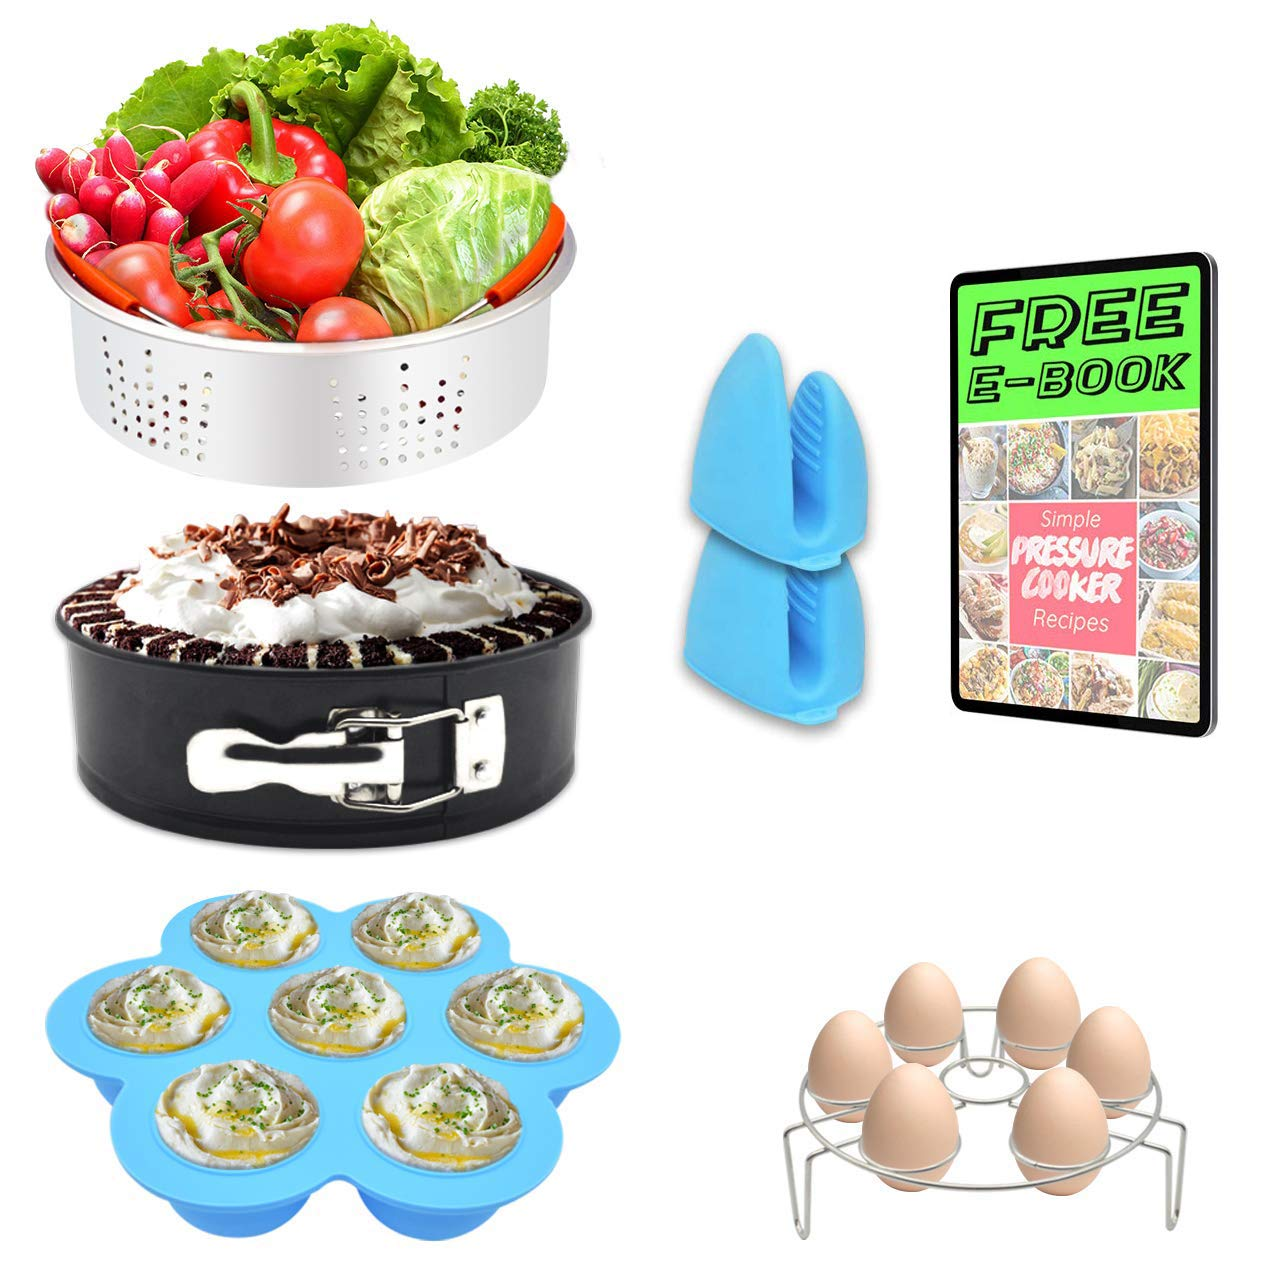 7 PCS Stackable Instant Pot Accessories Set - Vegetable Steamer Basket, Egg Bites Molds, Springform Pan, Egg Steamer Rack and Anti-scald Gloves, Fit 5/6 / 8 qt Instapot and Pressure Cooker …